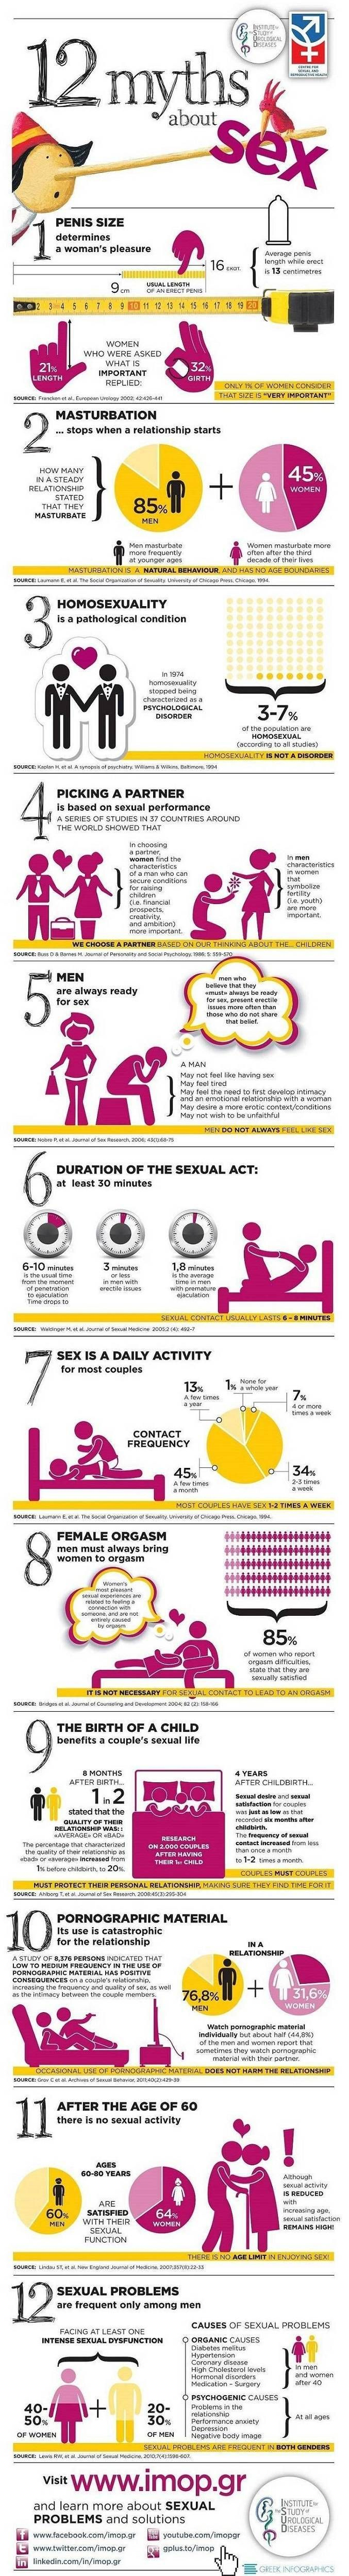 12 Common Myths about Sex Debunked – Infographic